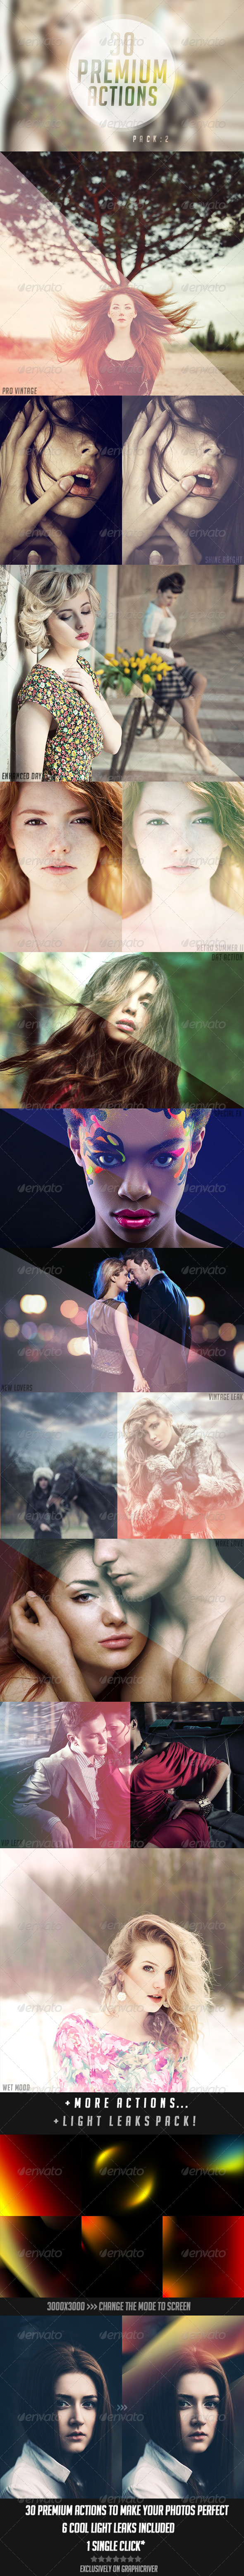 GraphicRiver 30 Premium Photoshop Actions 2 5194610